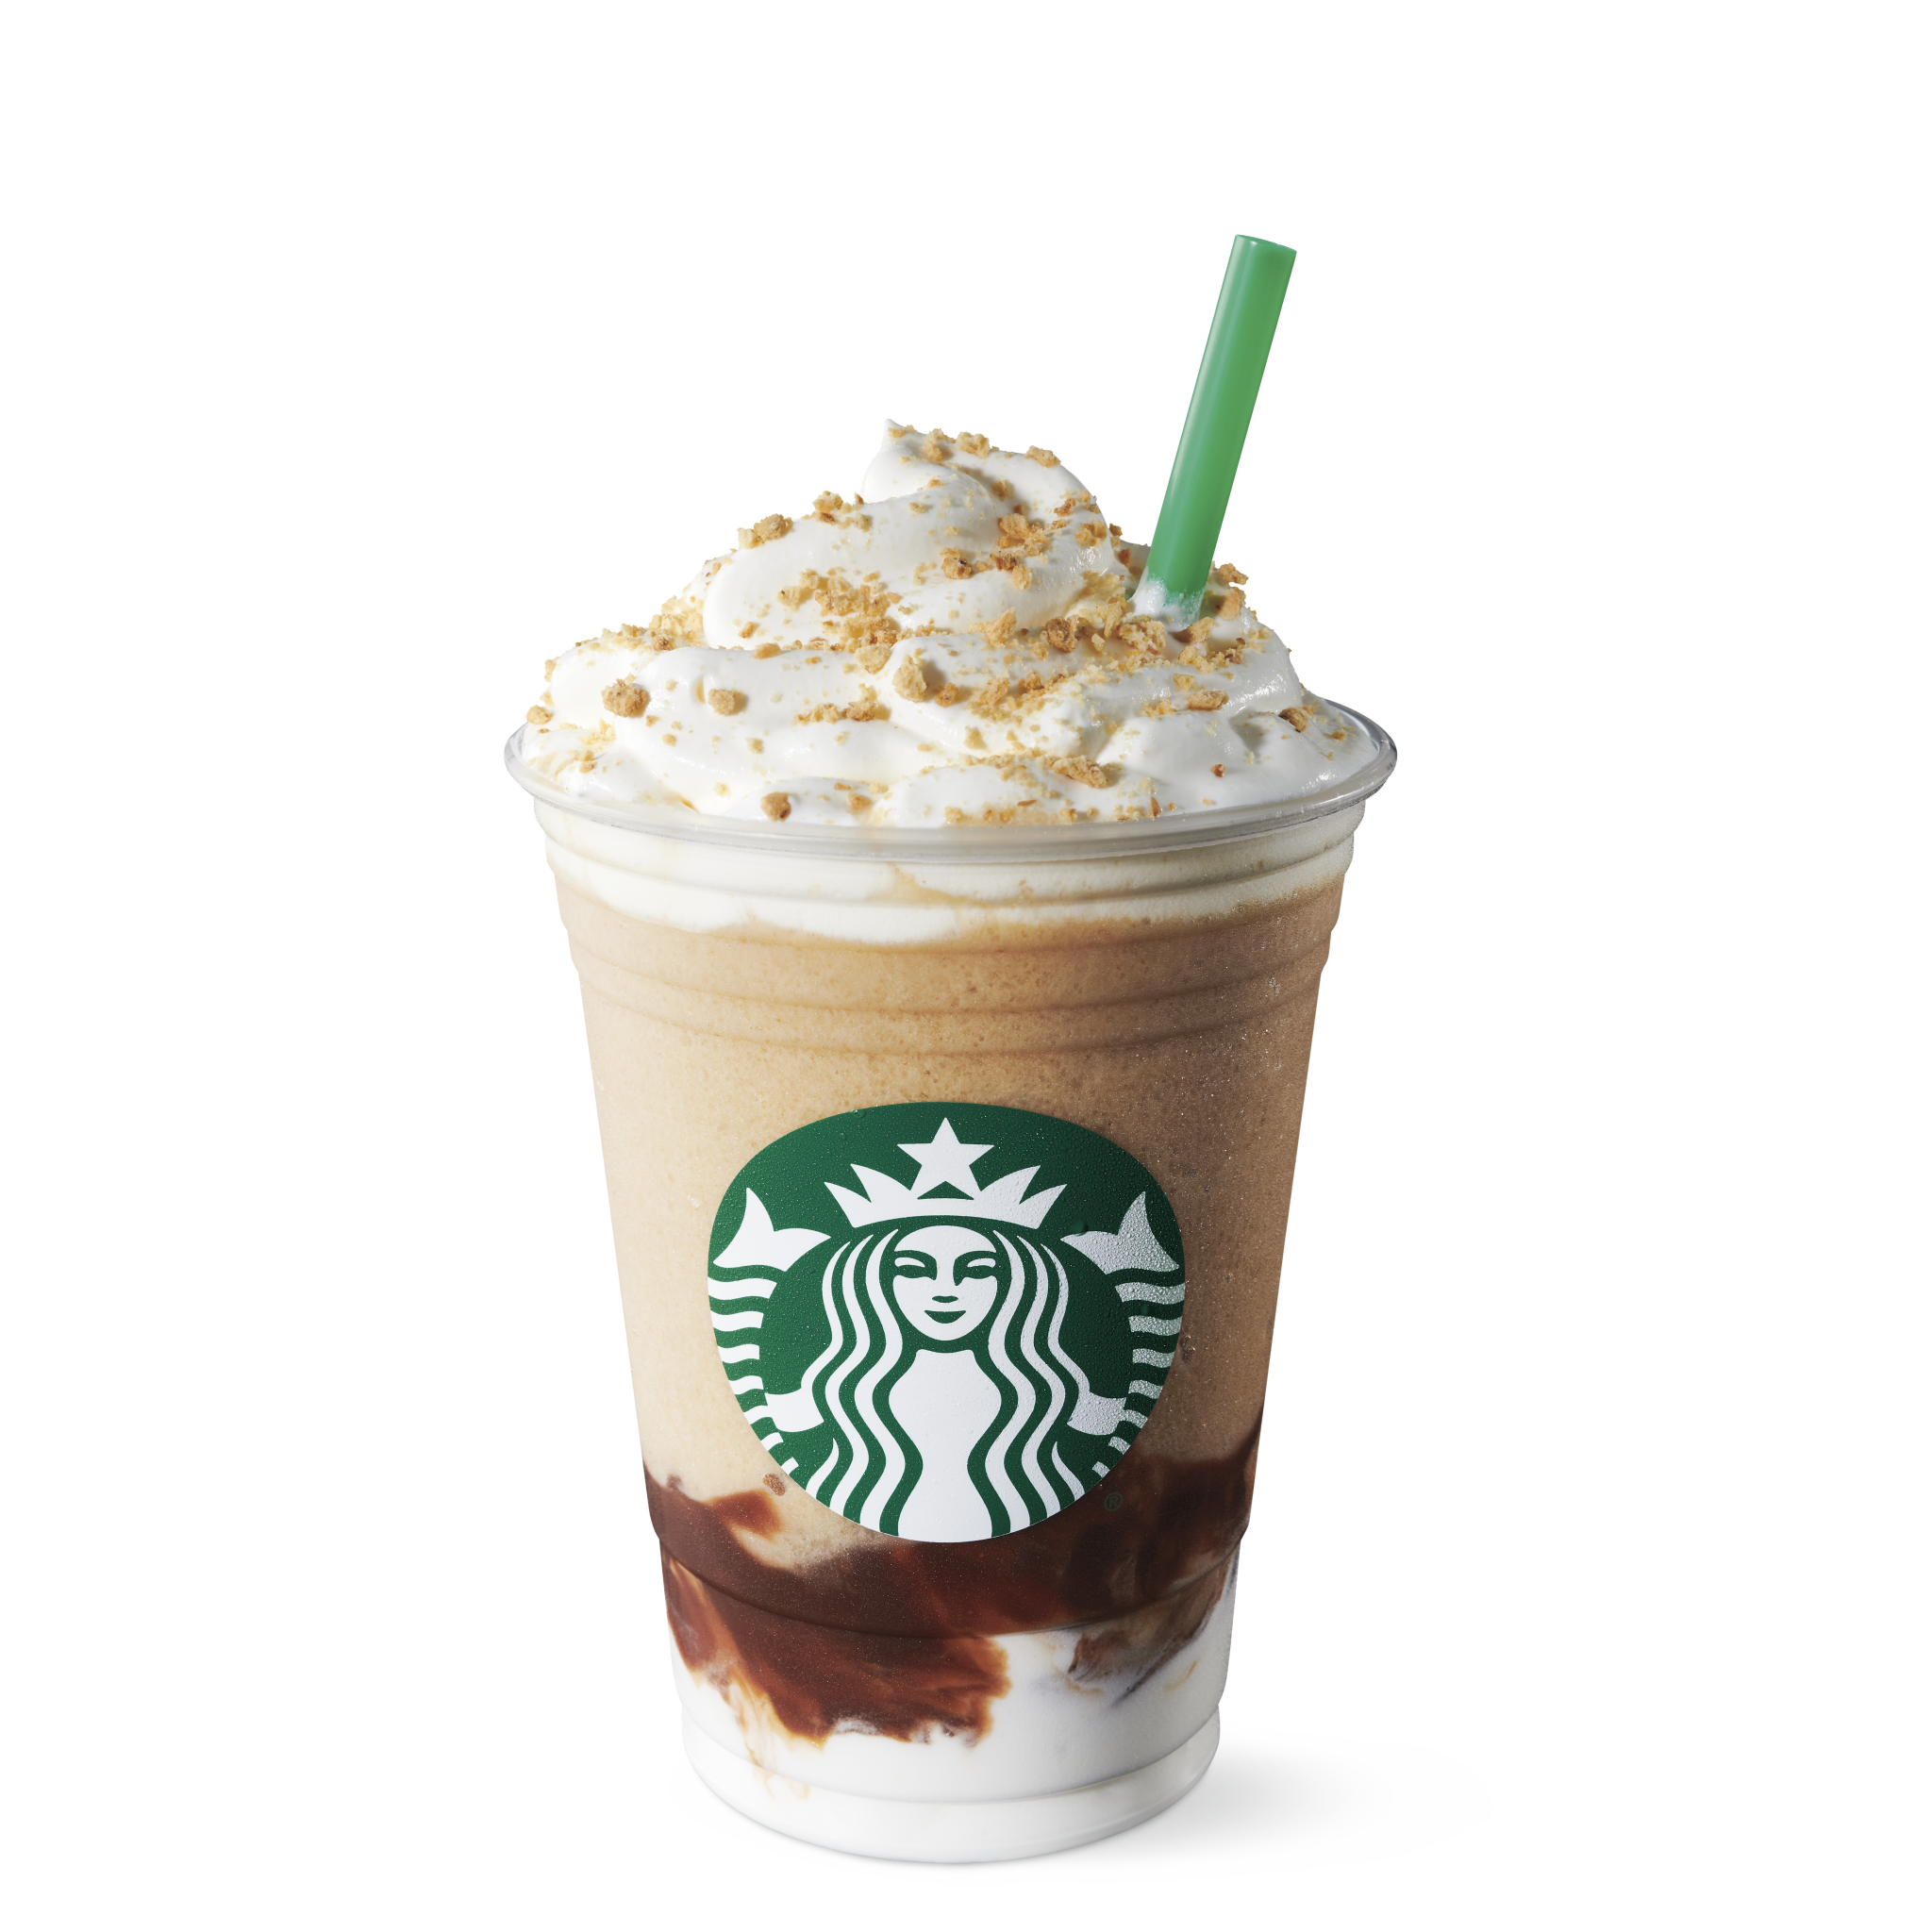 Starbucks new summer food and drink menu hits stores.